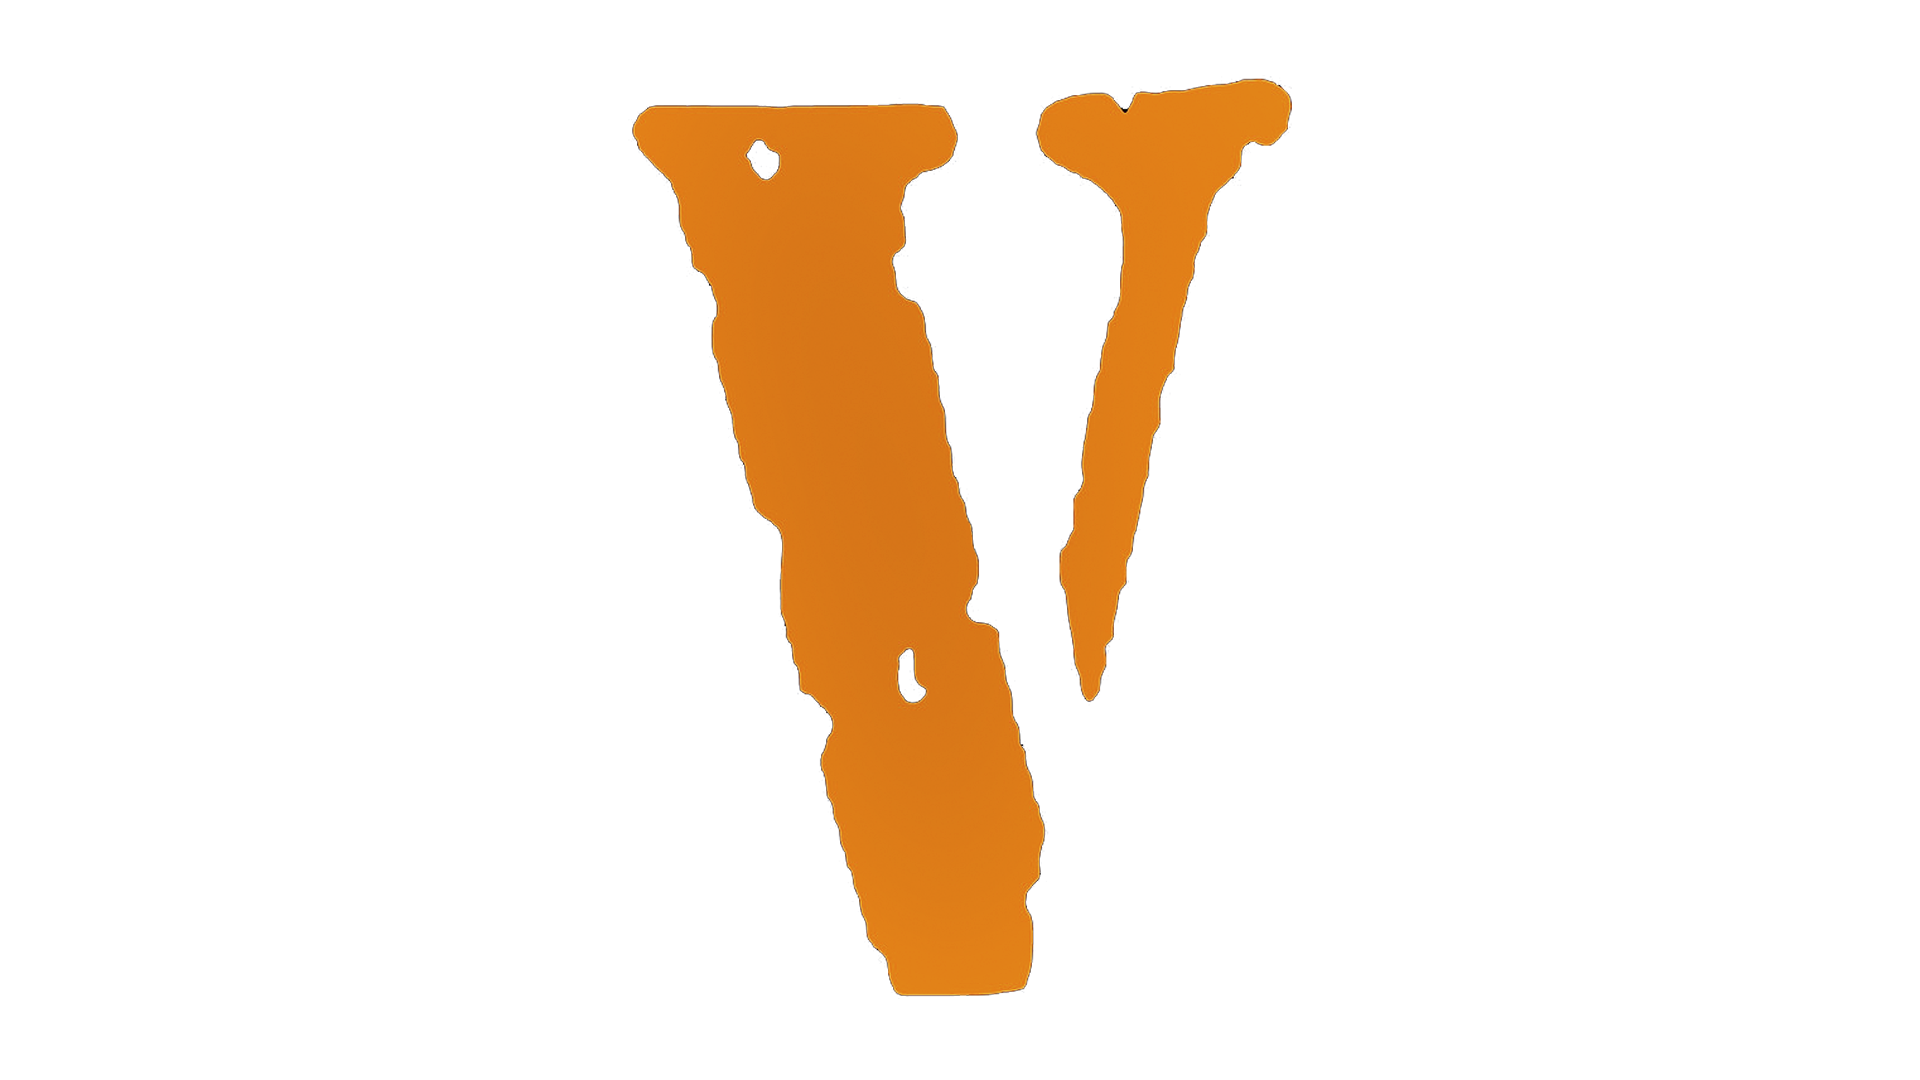 meaning vlone logo and symbol history and evolution vlone logo png 1920 1080